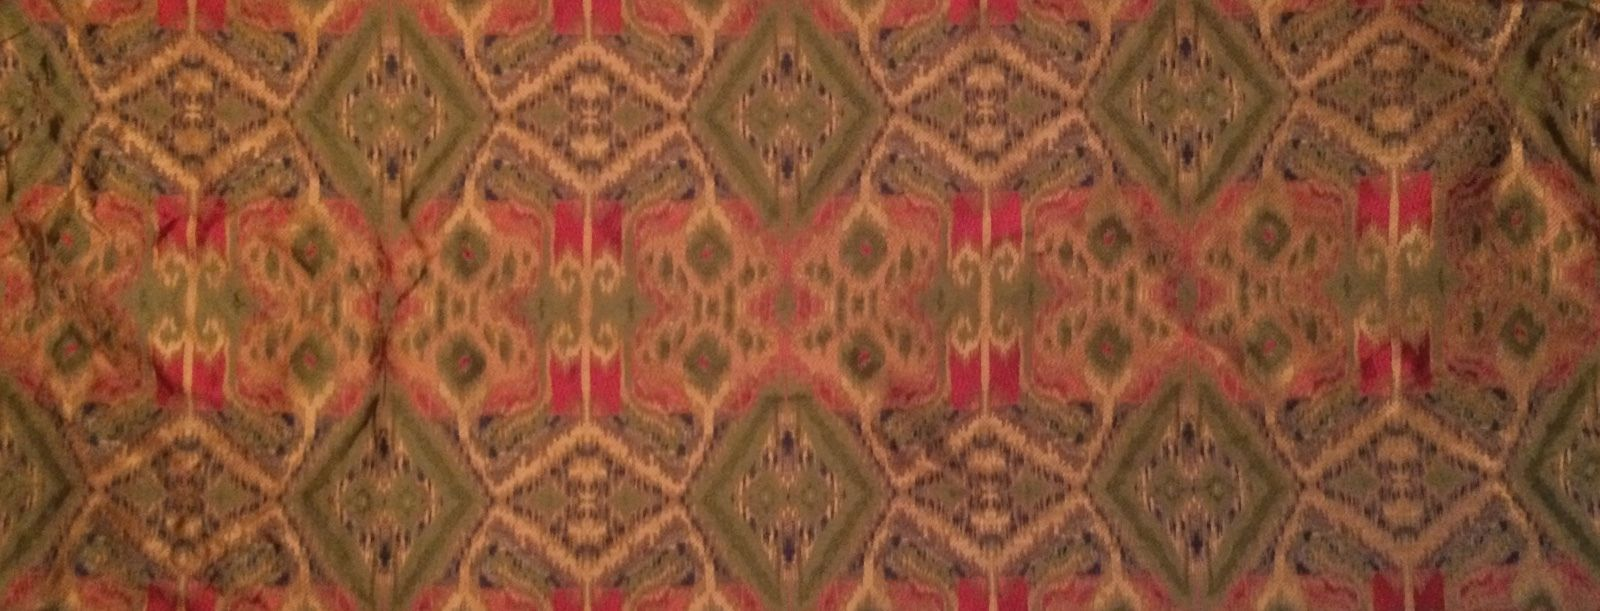 CLARENCE HOUSE Ikat Central Asian woven silk green blue red remnant new